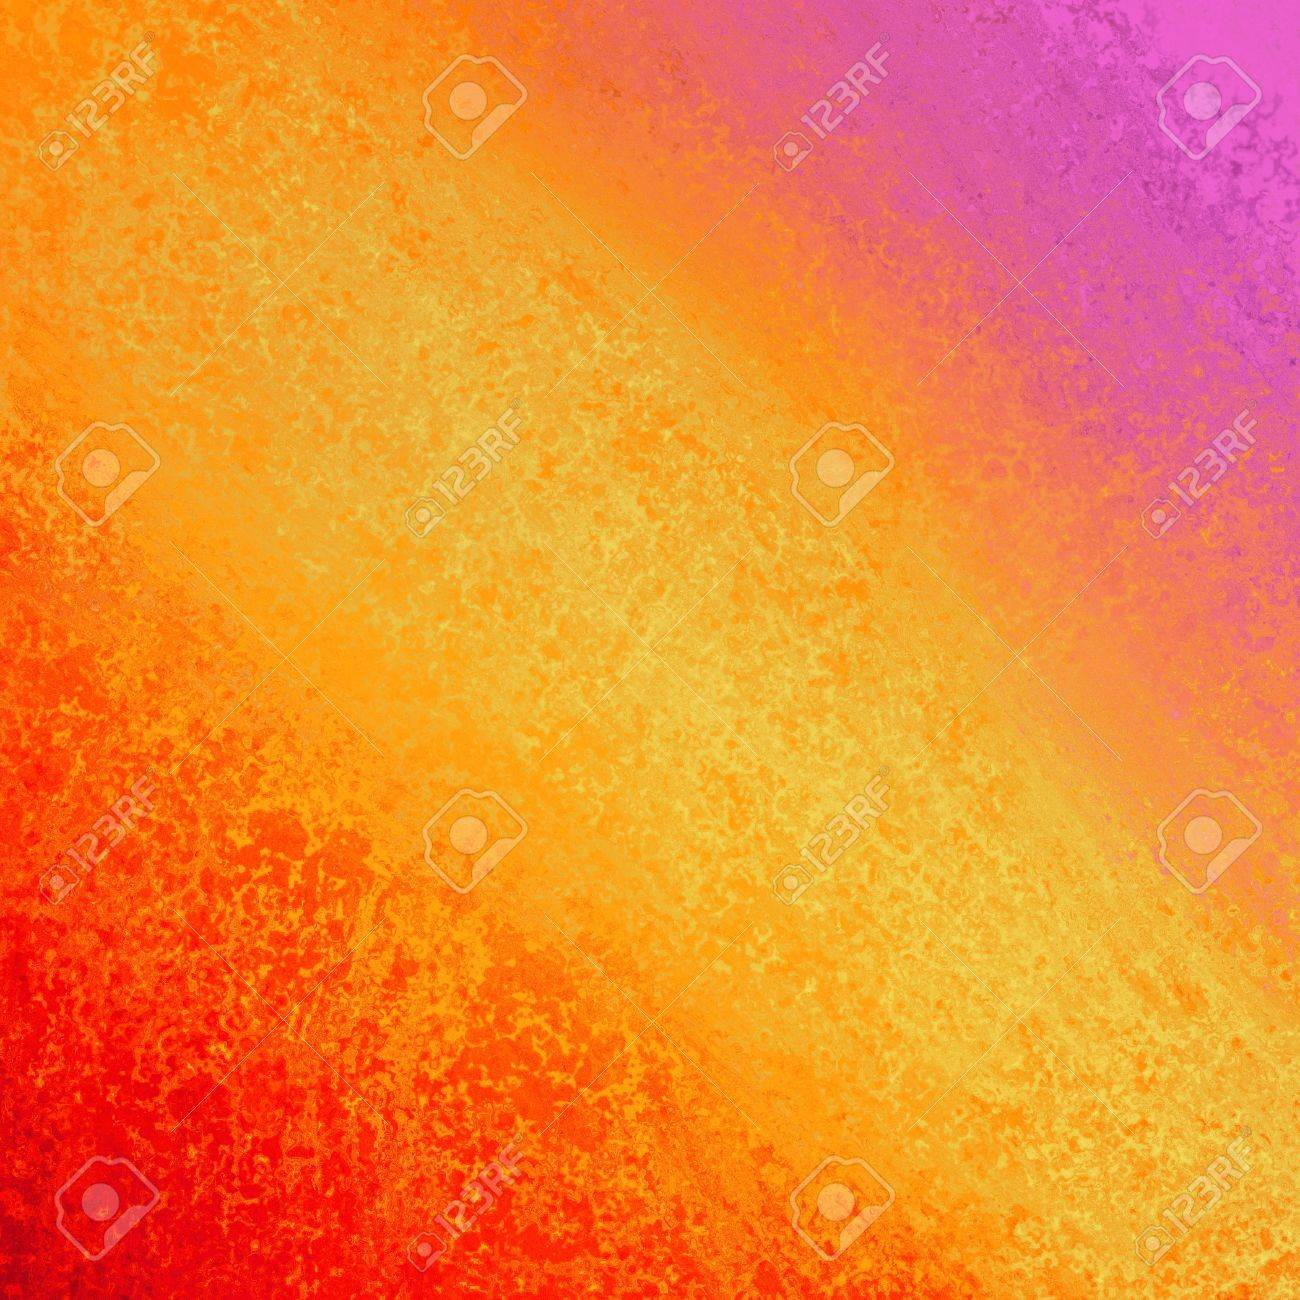 hot red orange abstract design element angle stripe with rough edge border frame corners, bright purple pink color splash, rough distressed texture grunge paint wall for website Stock Photo - 23323005